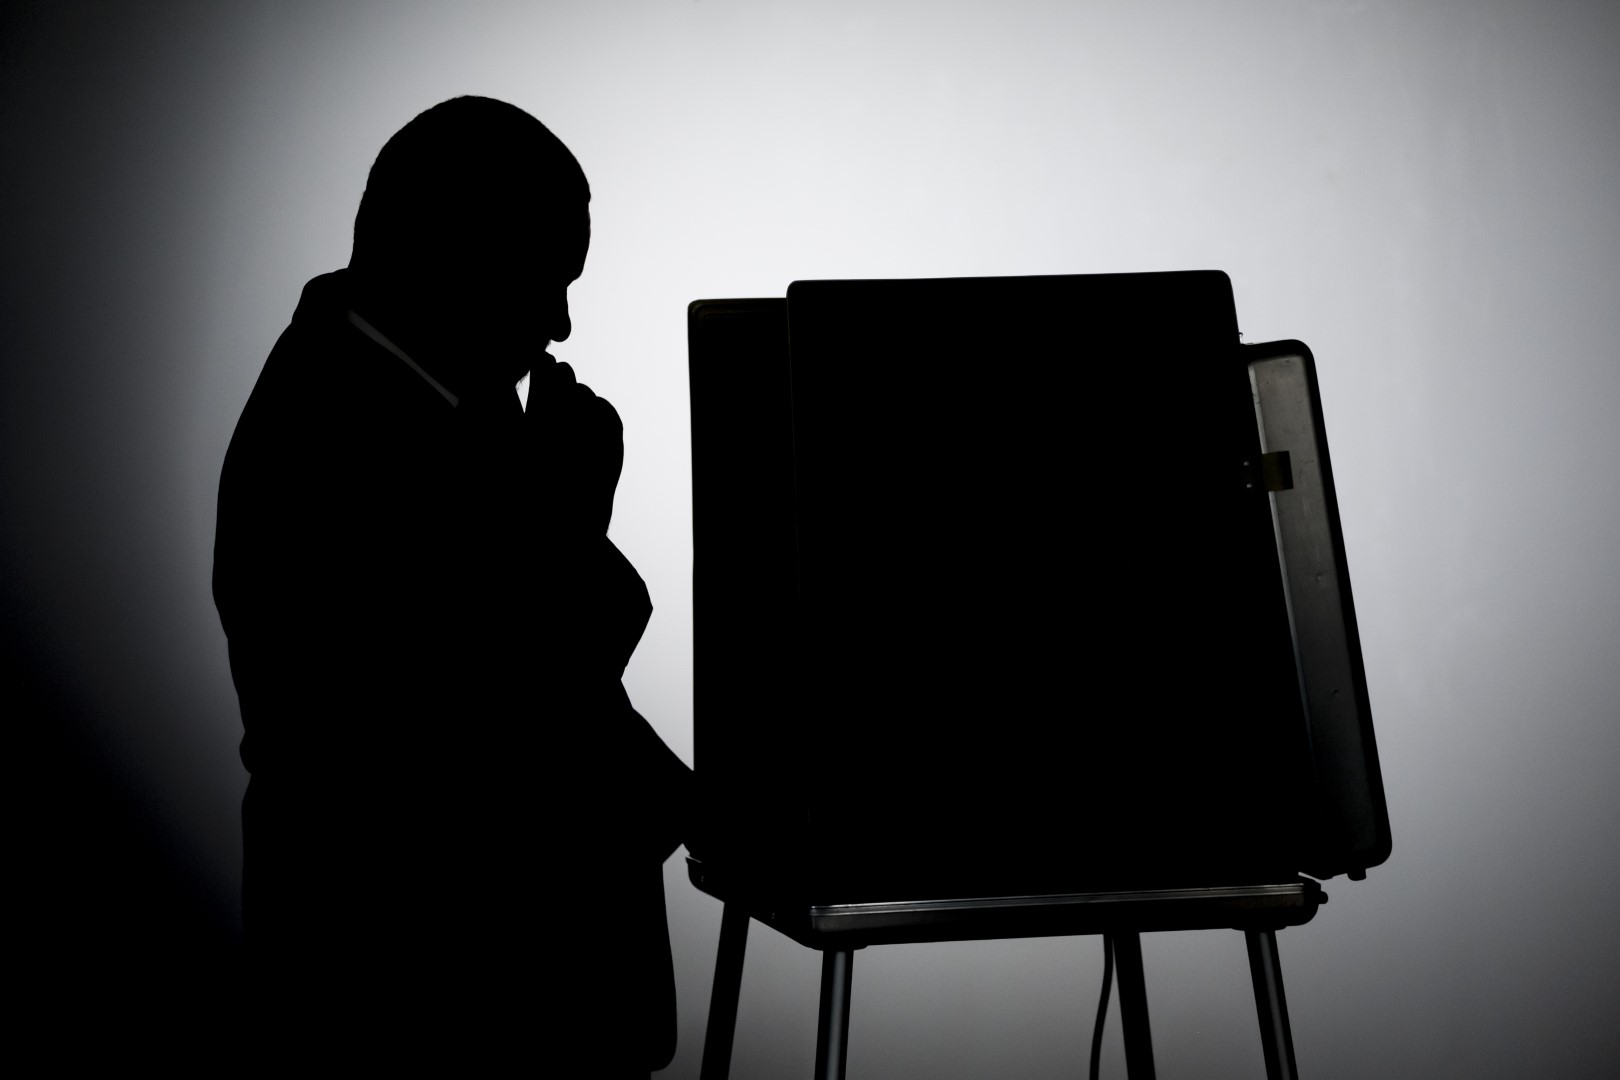 Man voting in a voting booth, silhouette shot